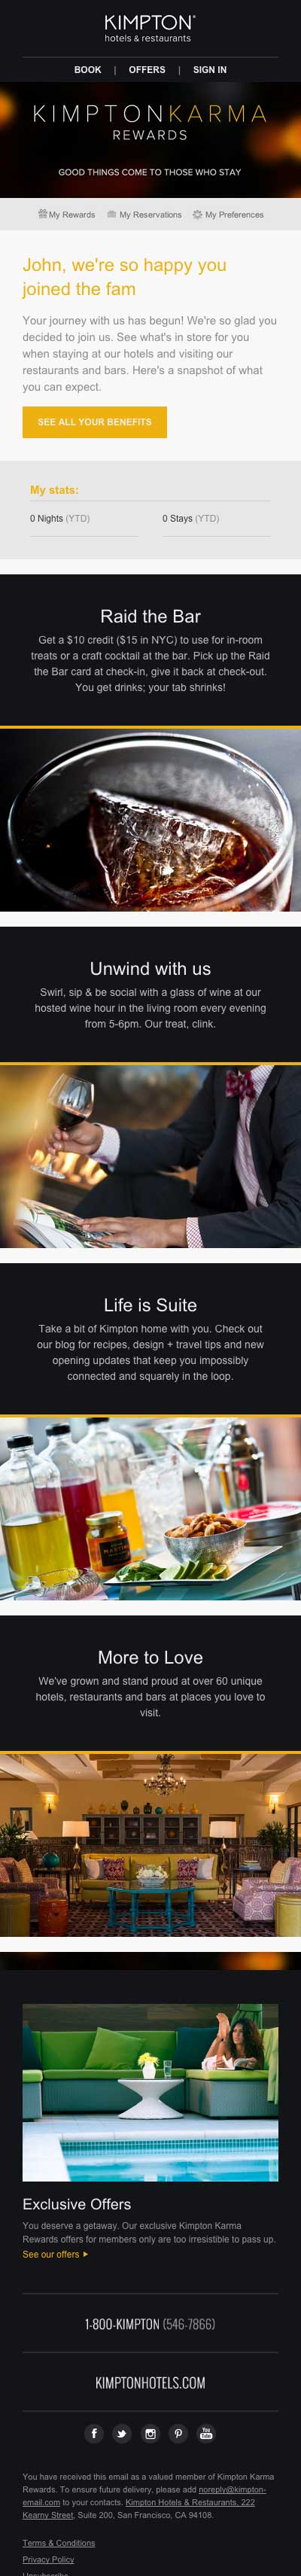 Kimpton Rewards email responsive design